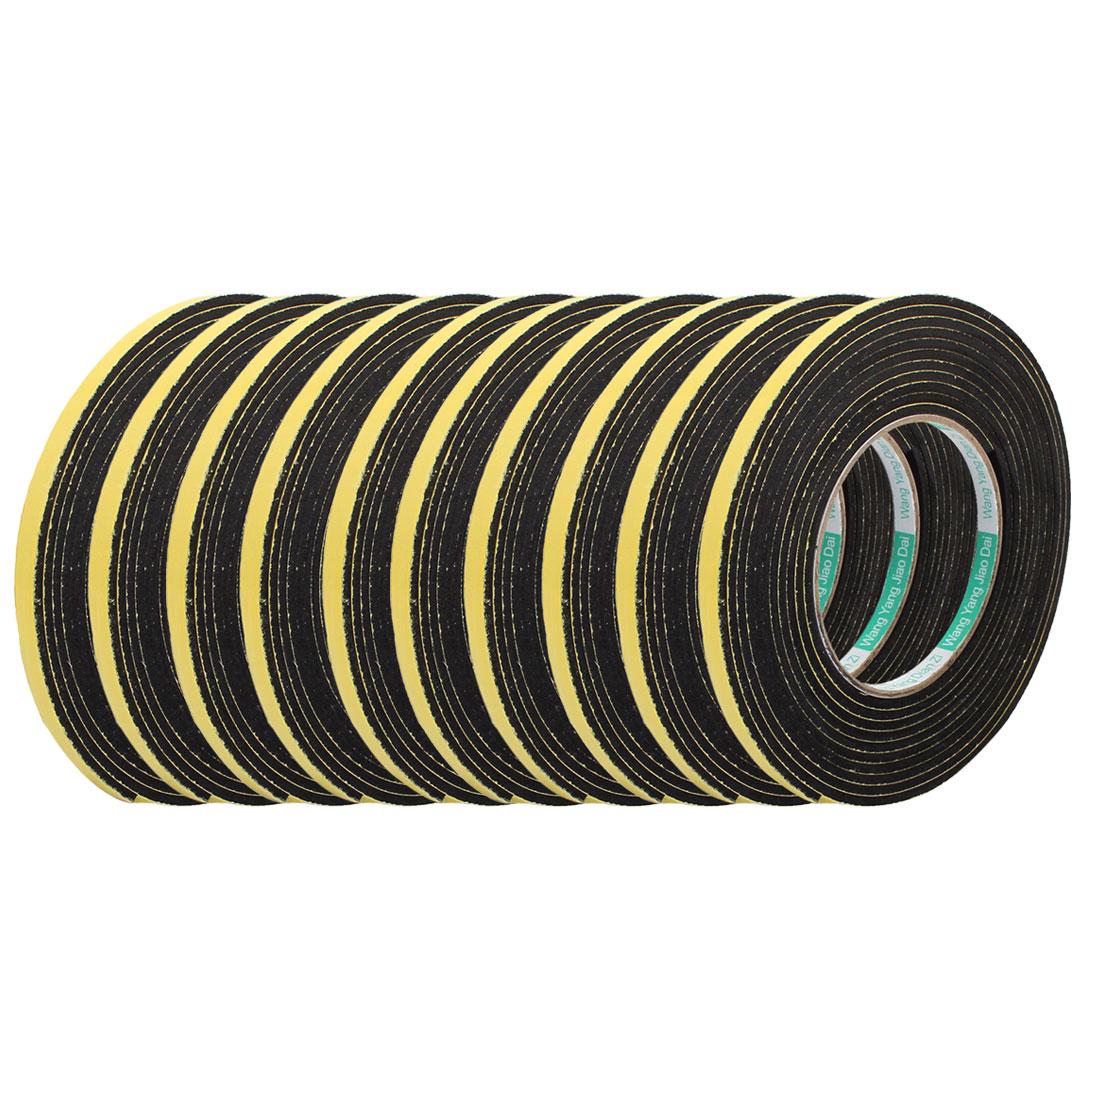 10Pcs 8mm Width 3mm Thick Single Sided Sealing Shockproof Sponge Tape 4m Length